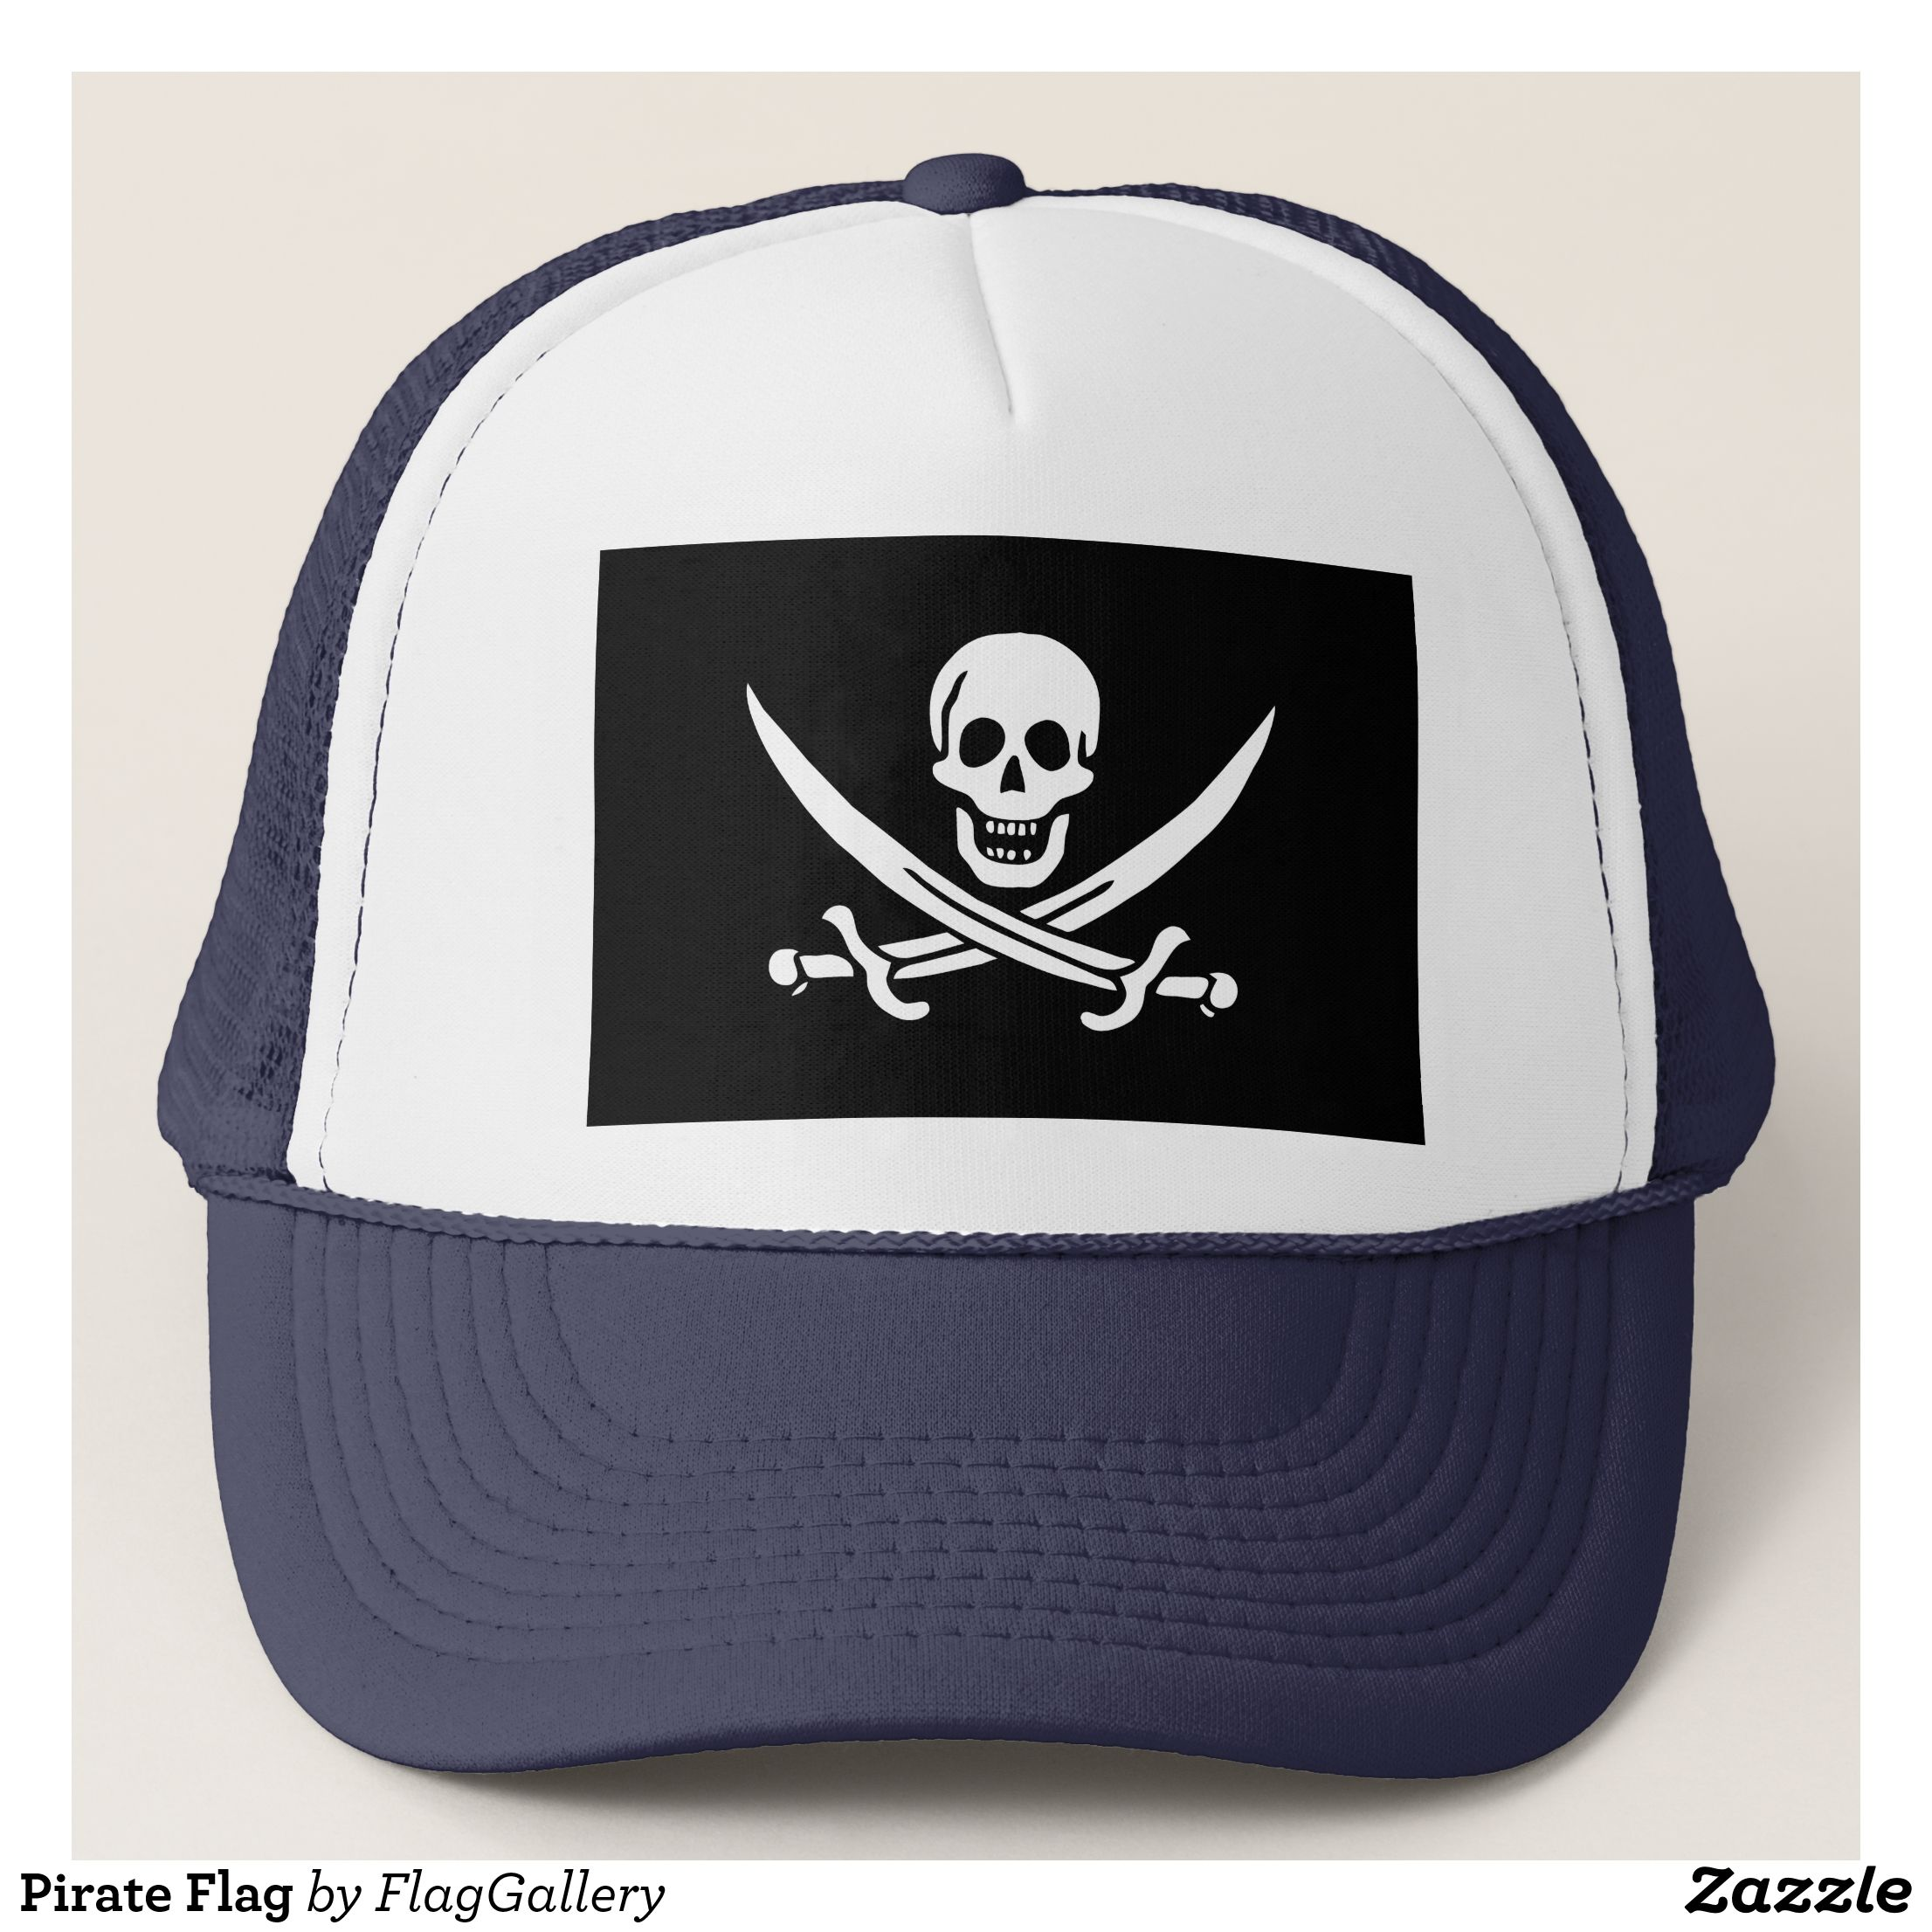 a0597ed87b24cf Pirate Flag Trucker Hat - Urban Hunter Fisher Farmer Redneck Hats By  Talented Fashion And Graphic Designers - #hats #truckerhat #mensfashion  #apparel ...